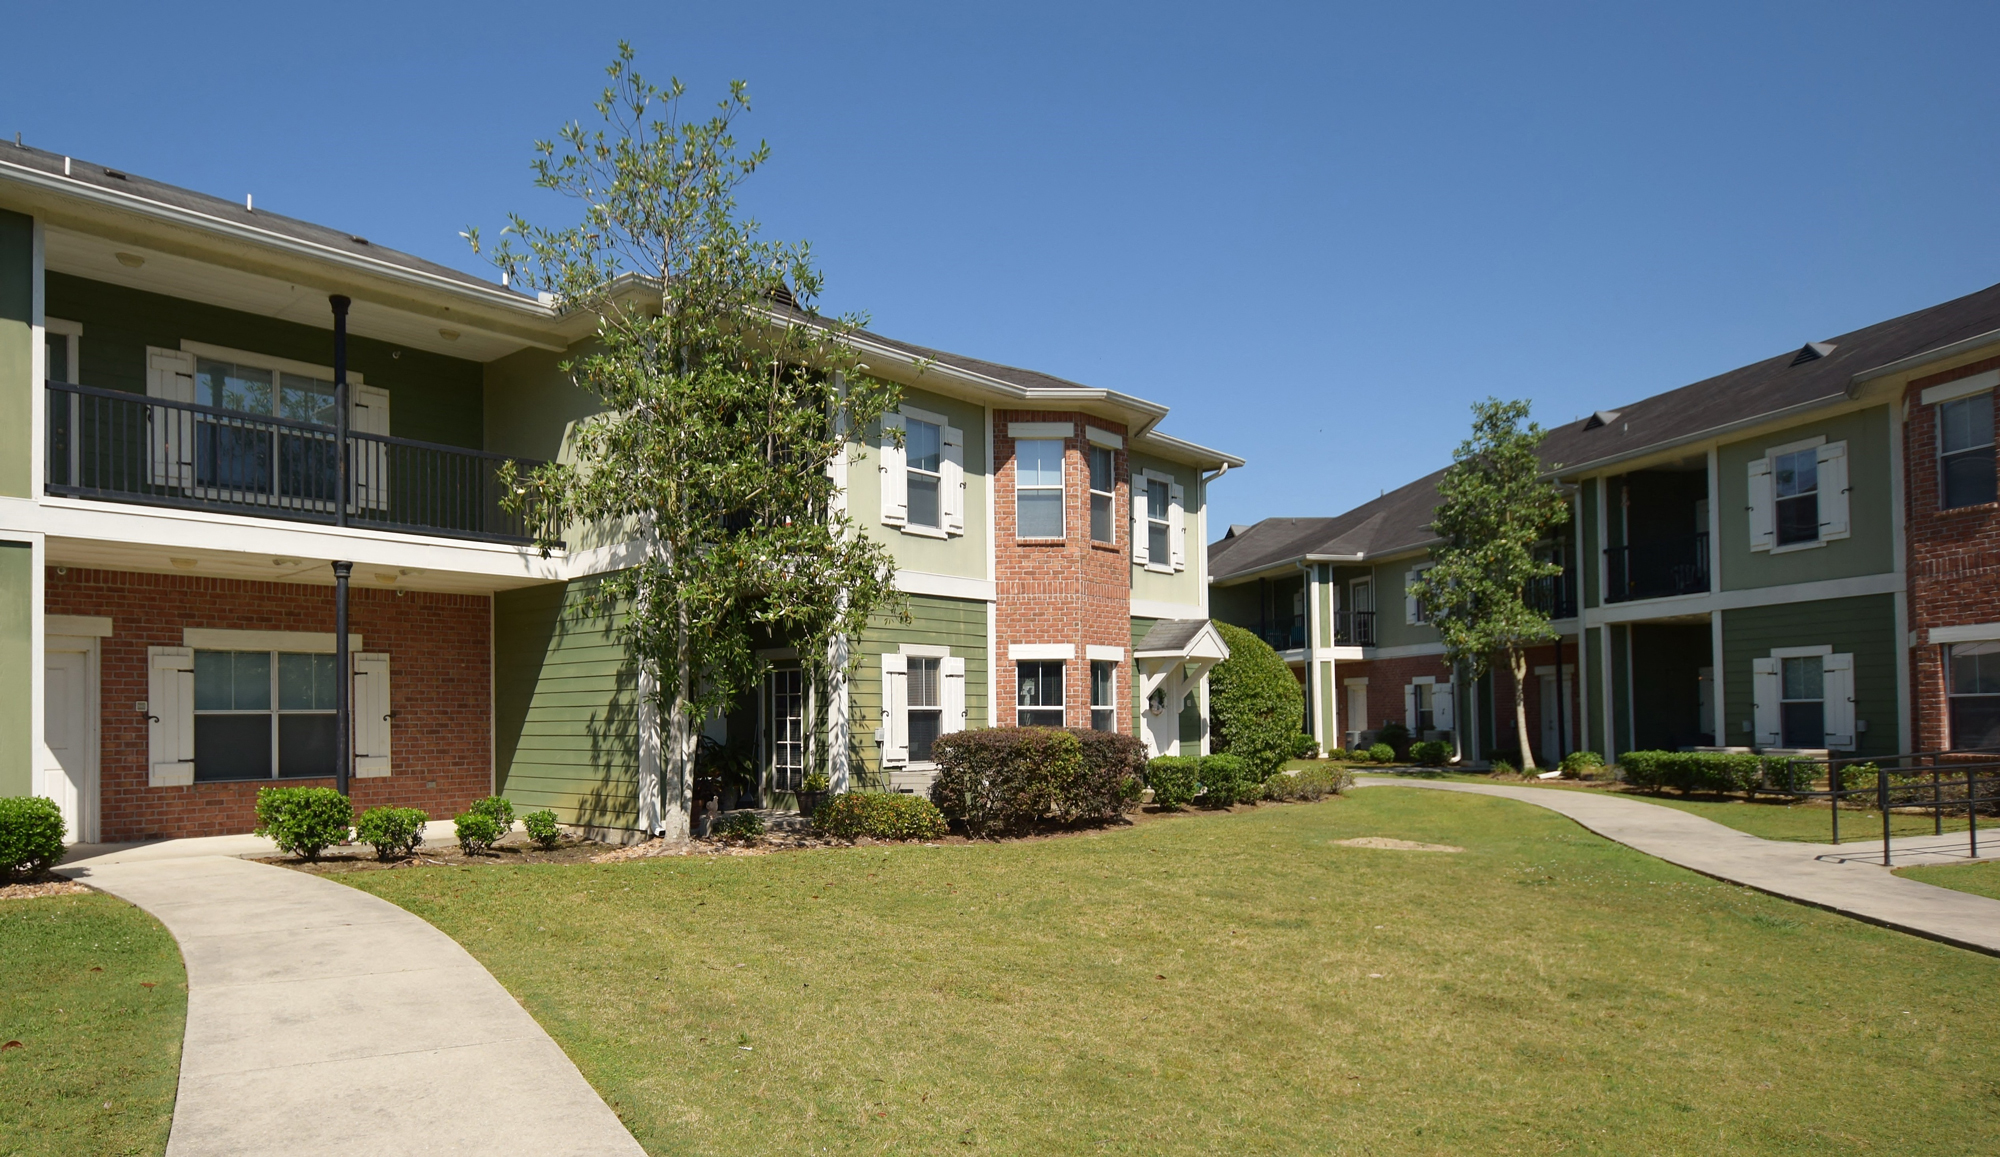 Welcoming Landscaping at Highlands of Grand Pointe Apartments in Lafayette, LA